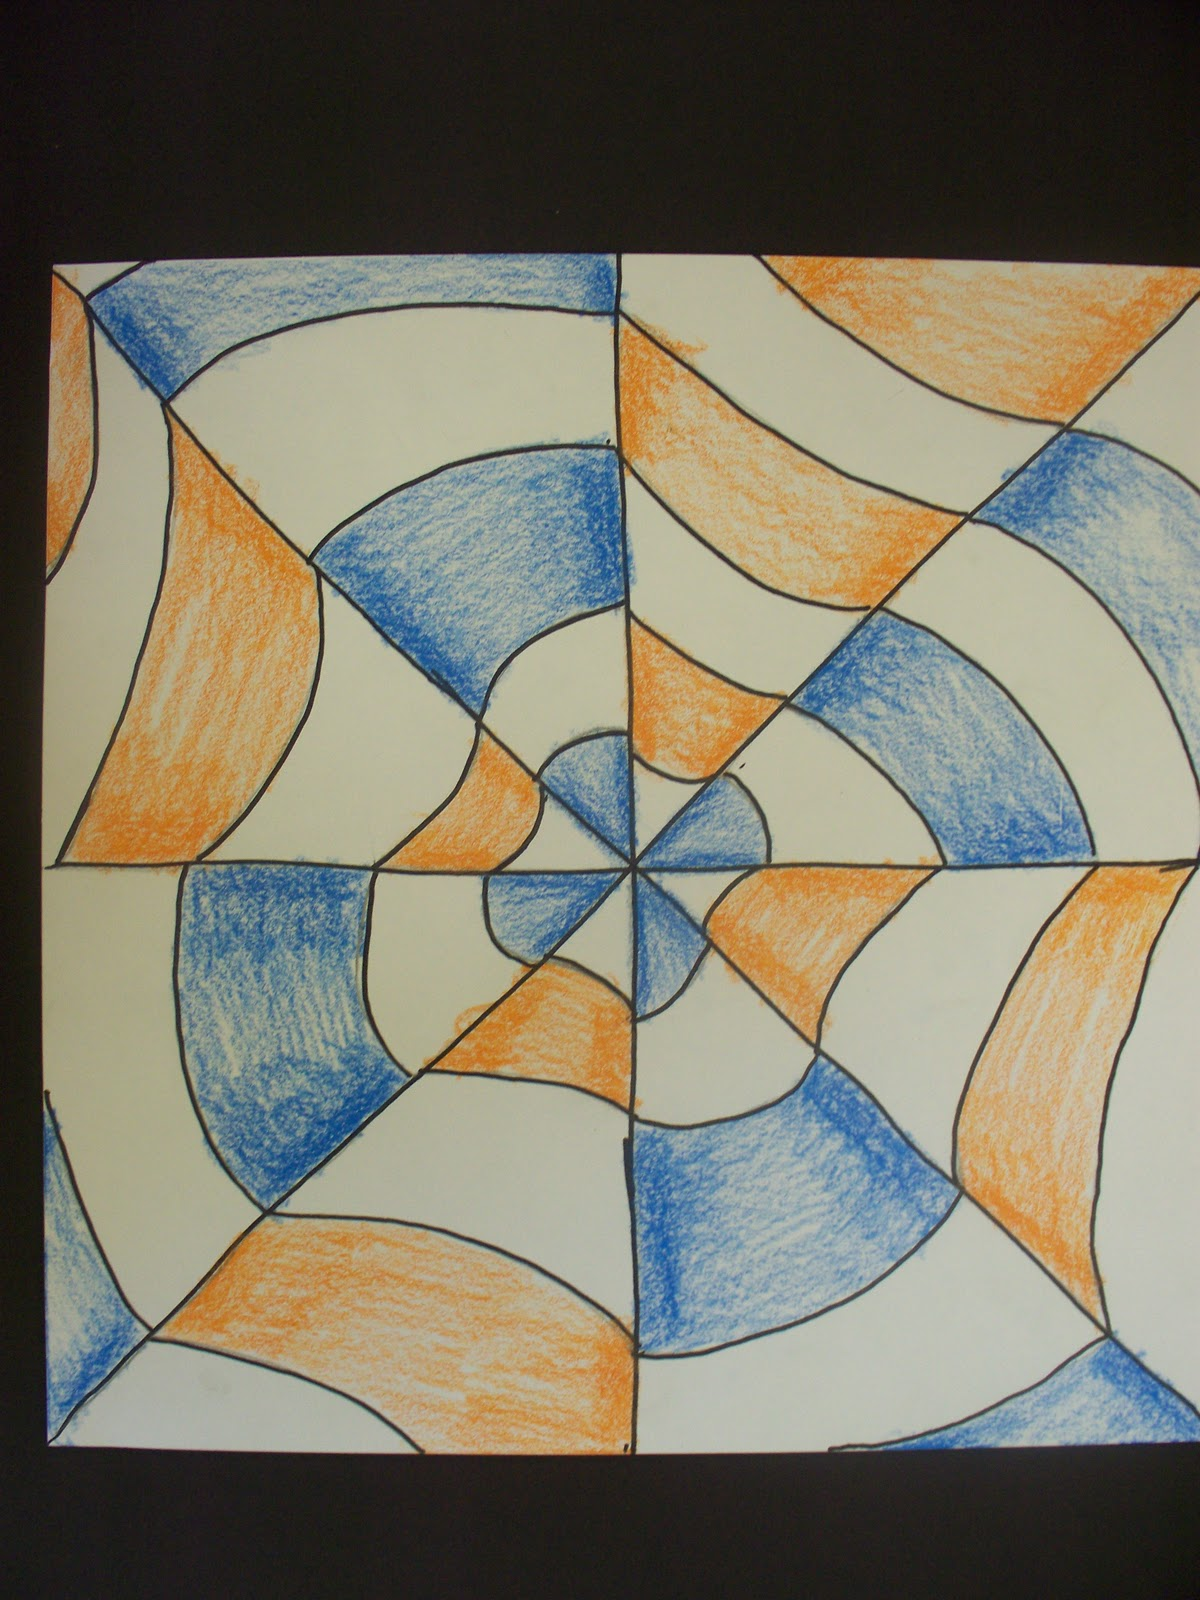 Drawn optical illusion basic Into our designs in about